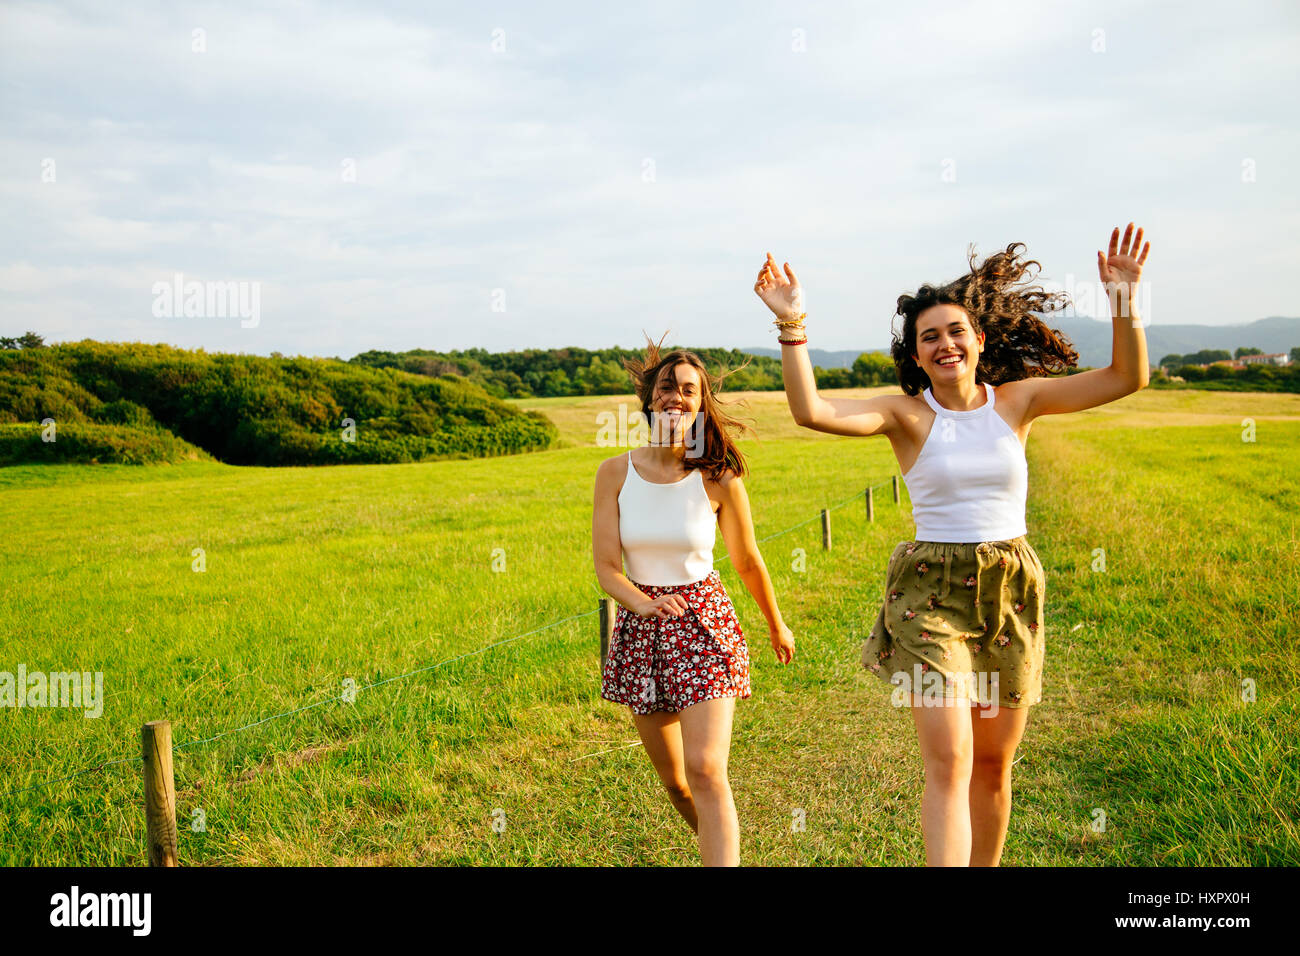 Funny female friends jumping in a green field - Stock Image